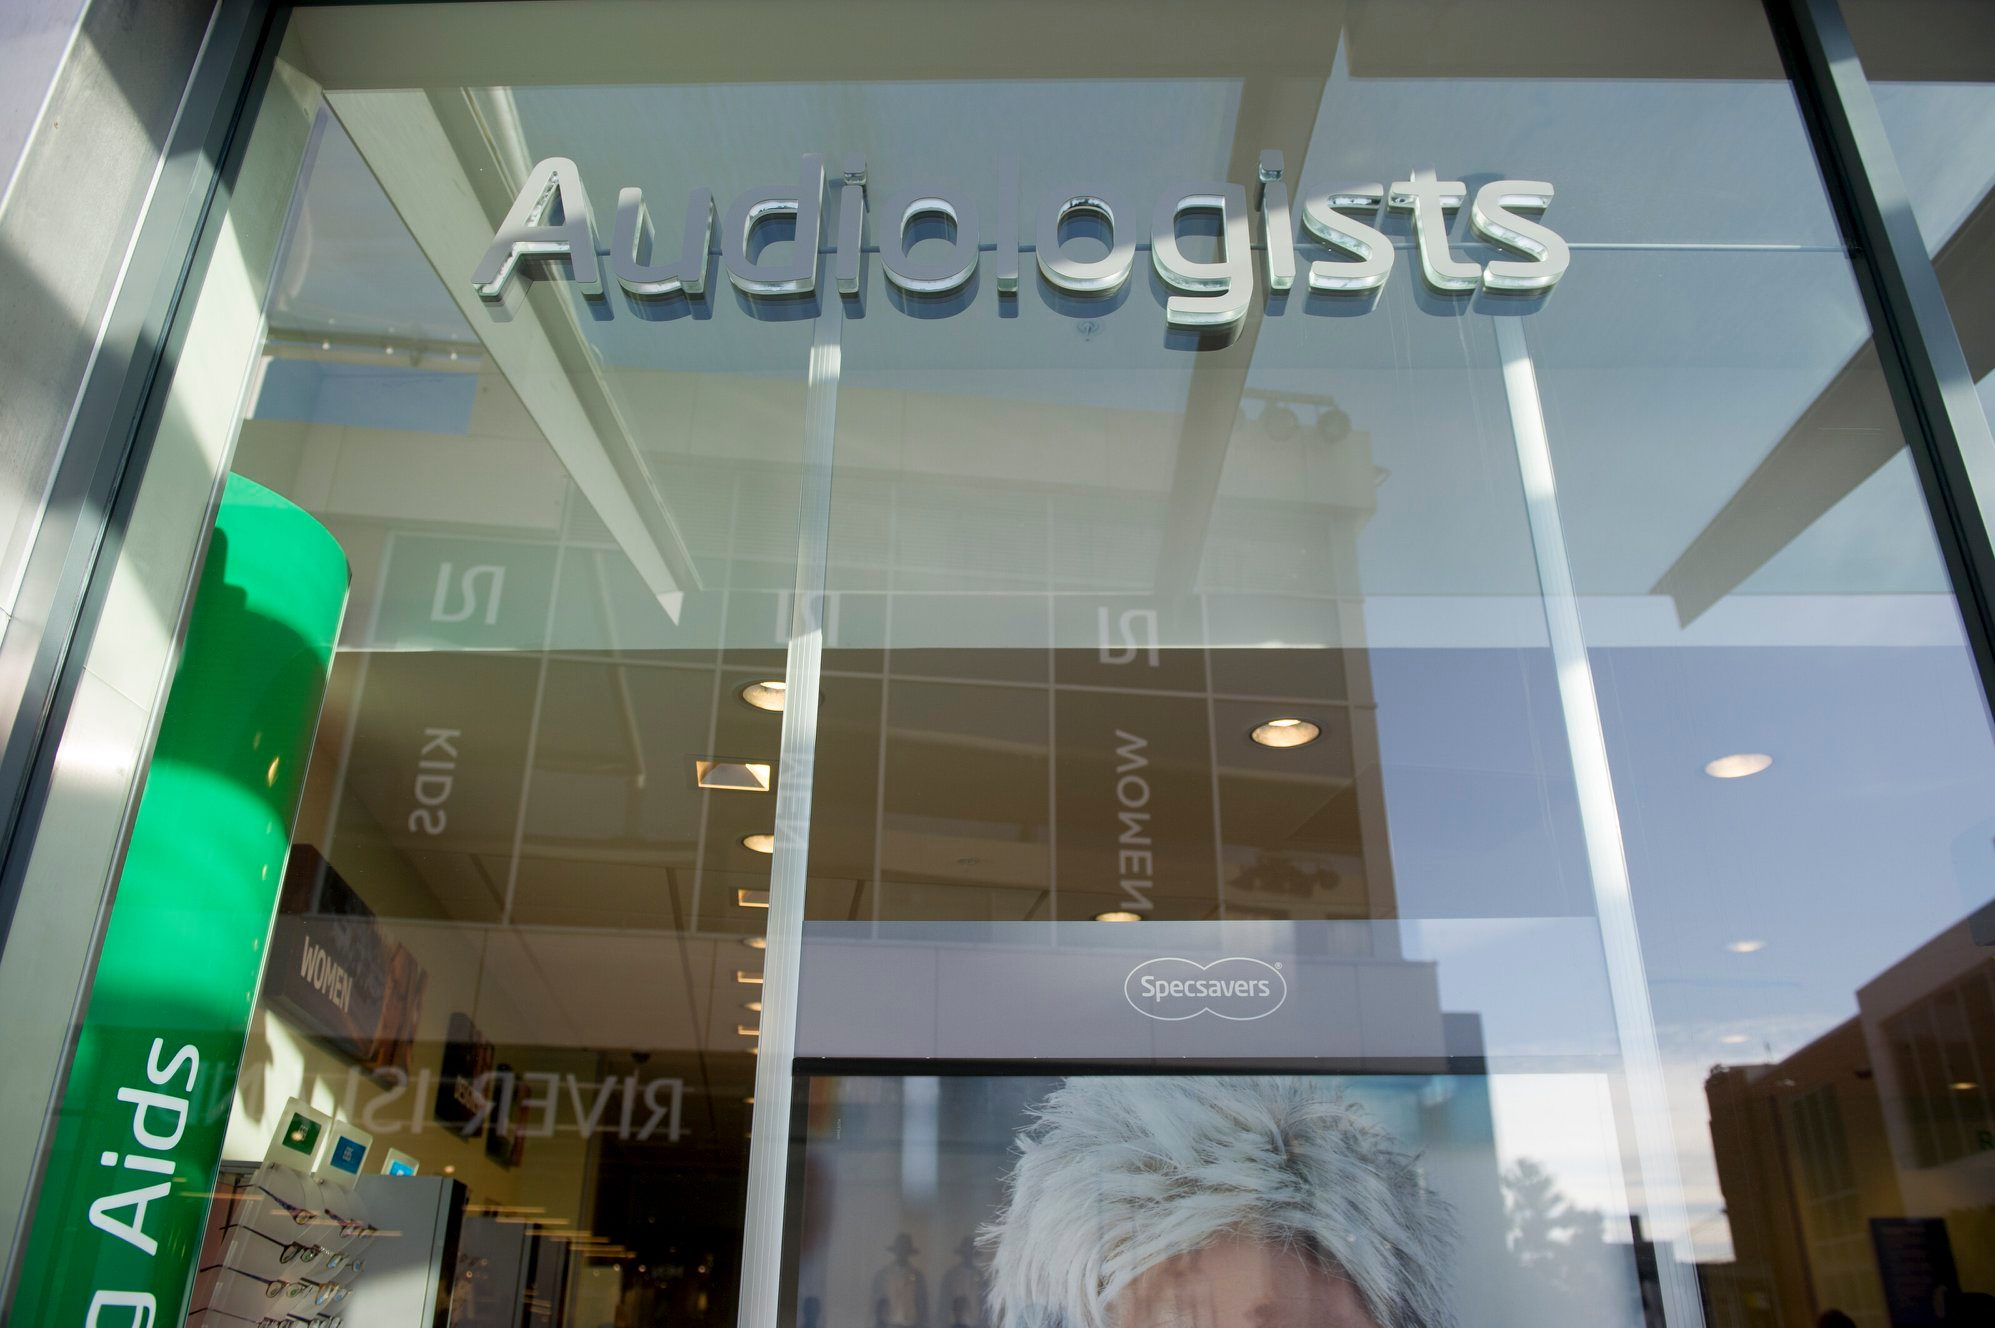 Audiology going from strength to strength